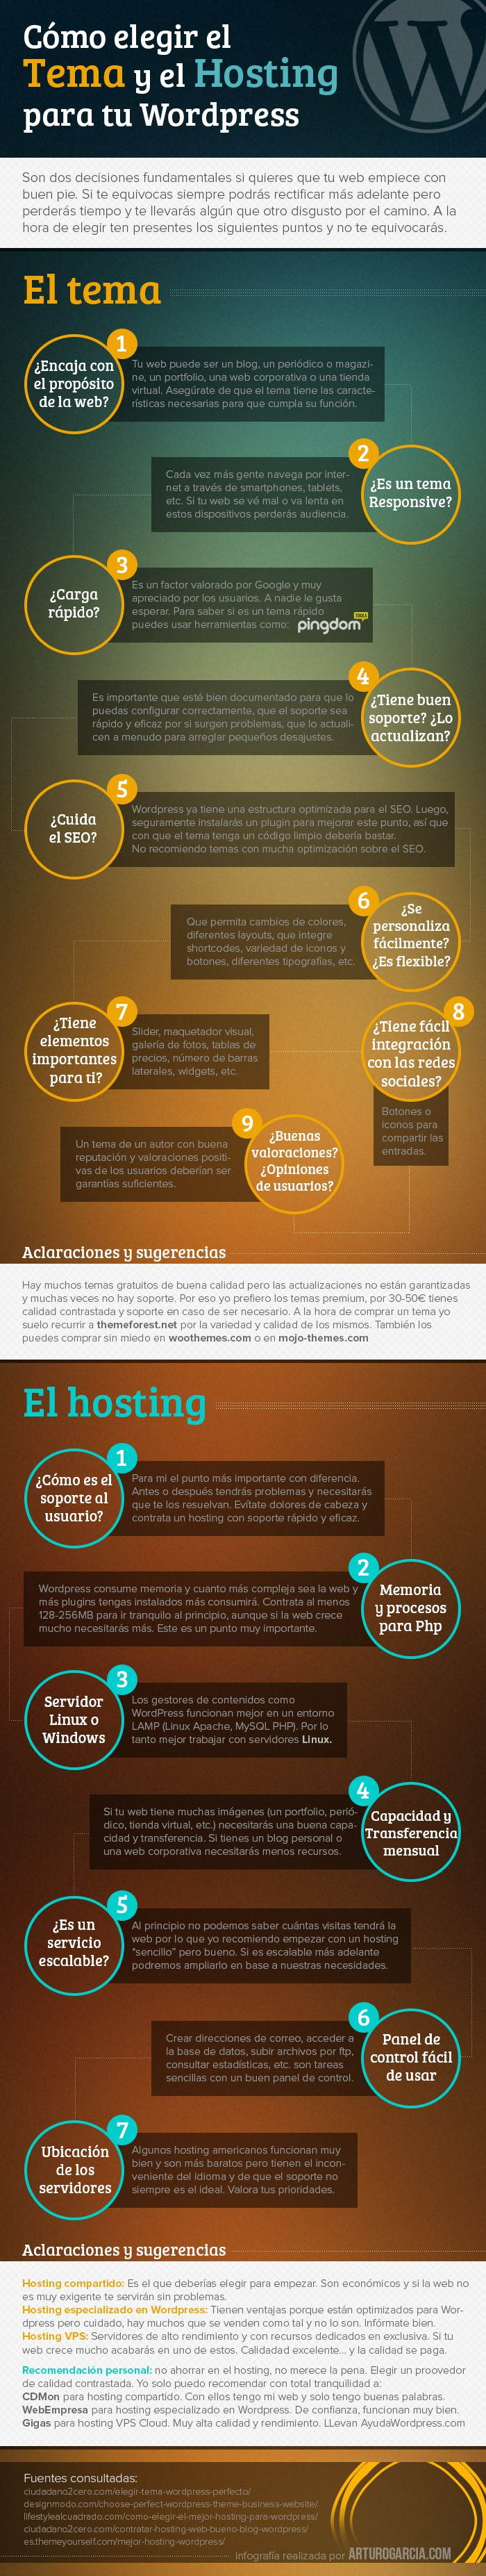 infografia-elegir-tema-hosting-wordpress